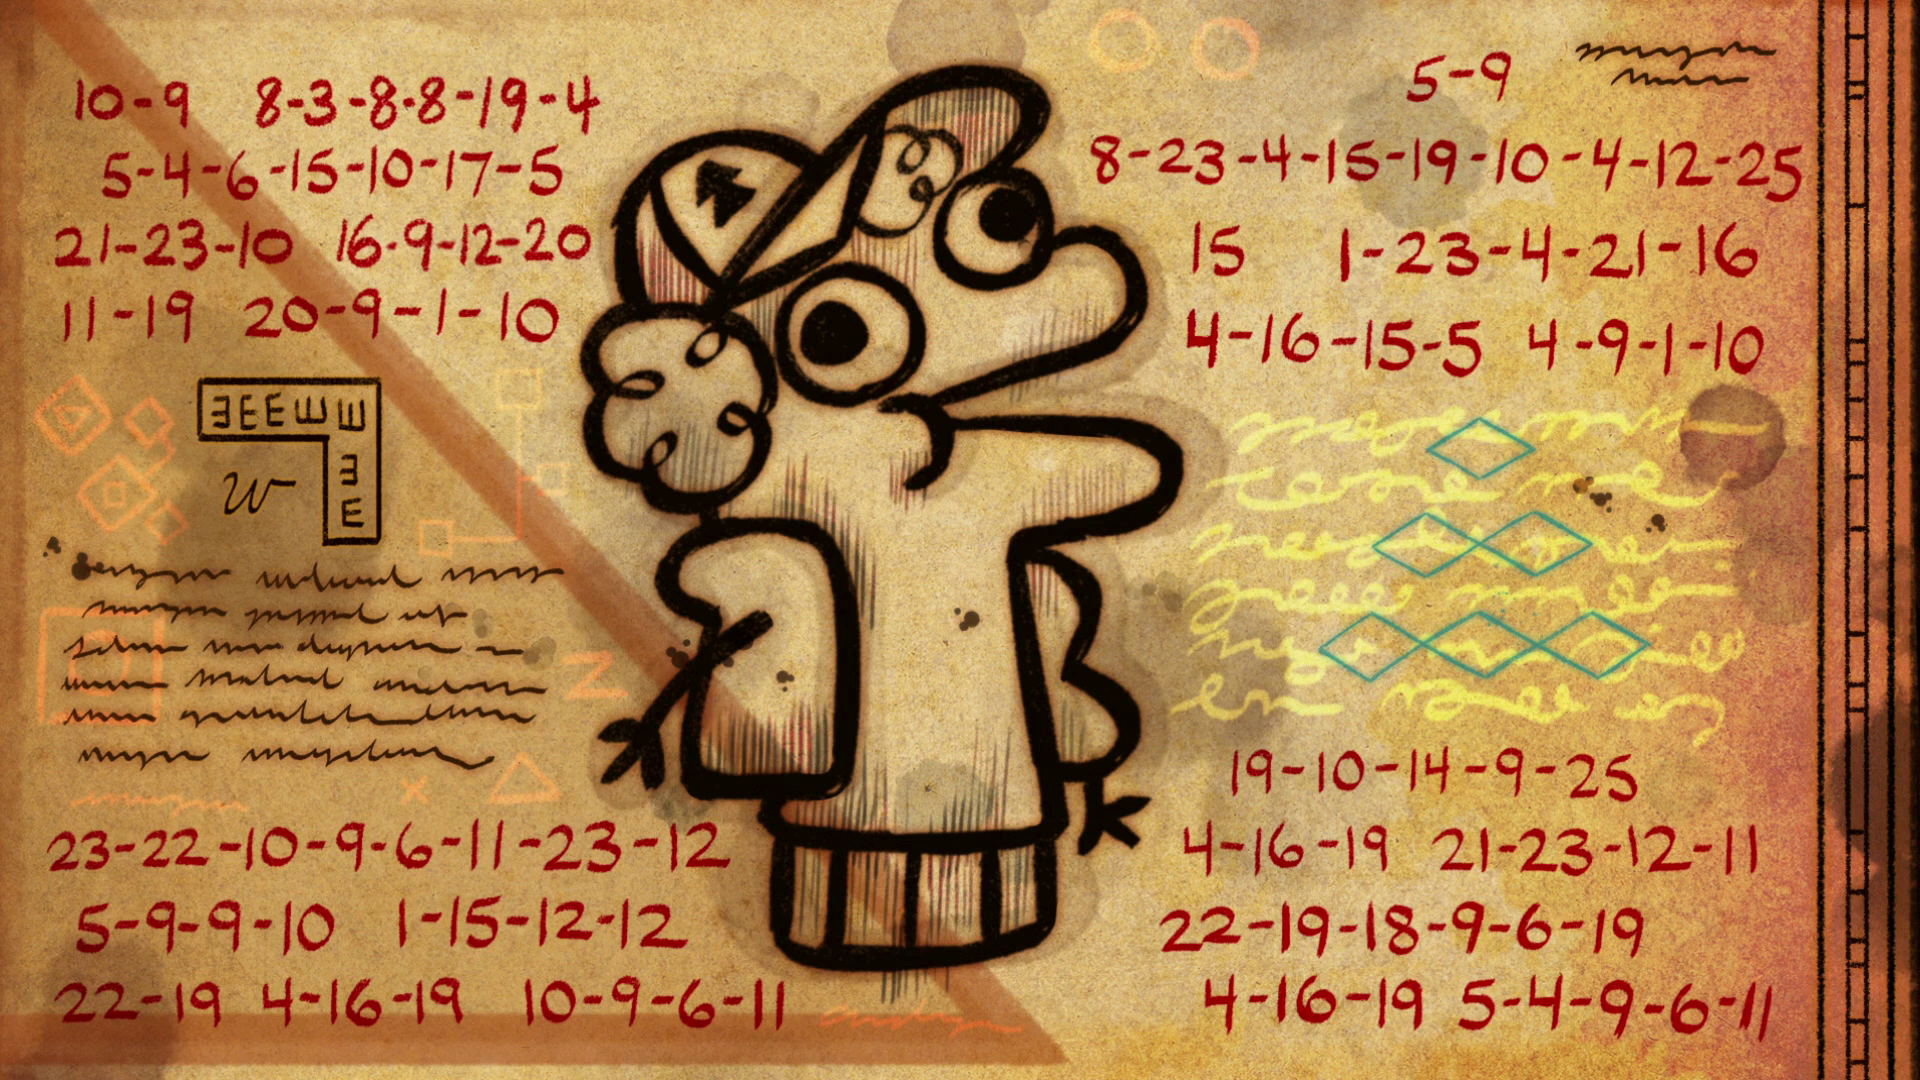 「gravity falls cryptograms」の画像検索結果